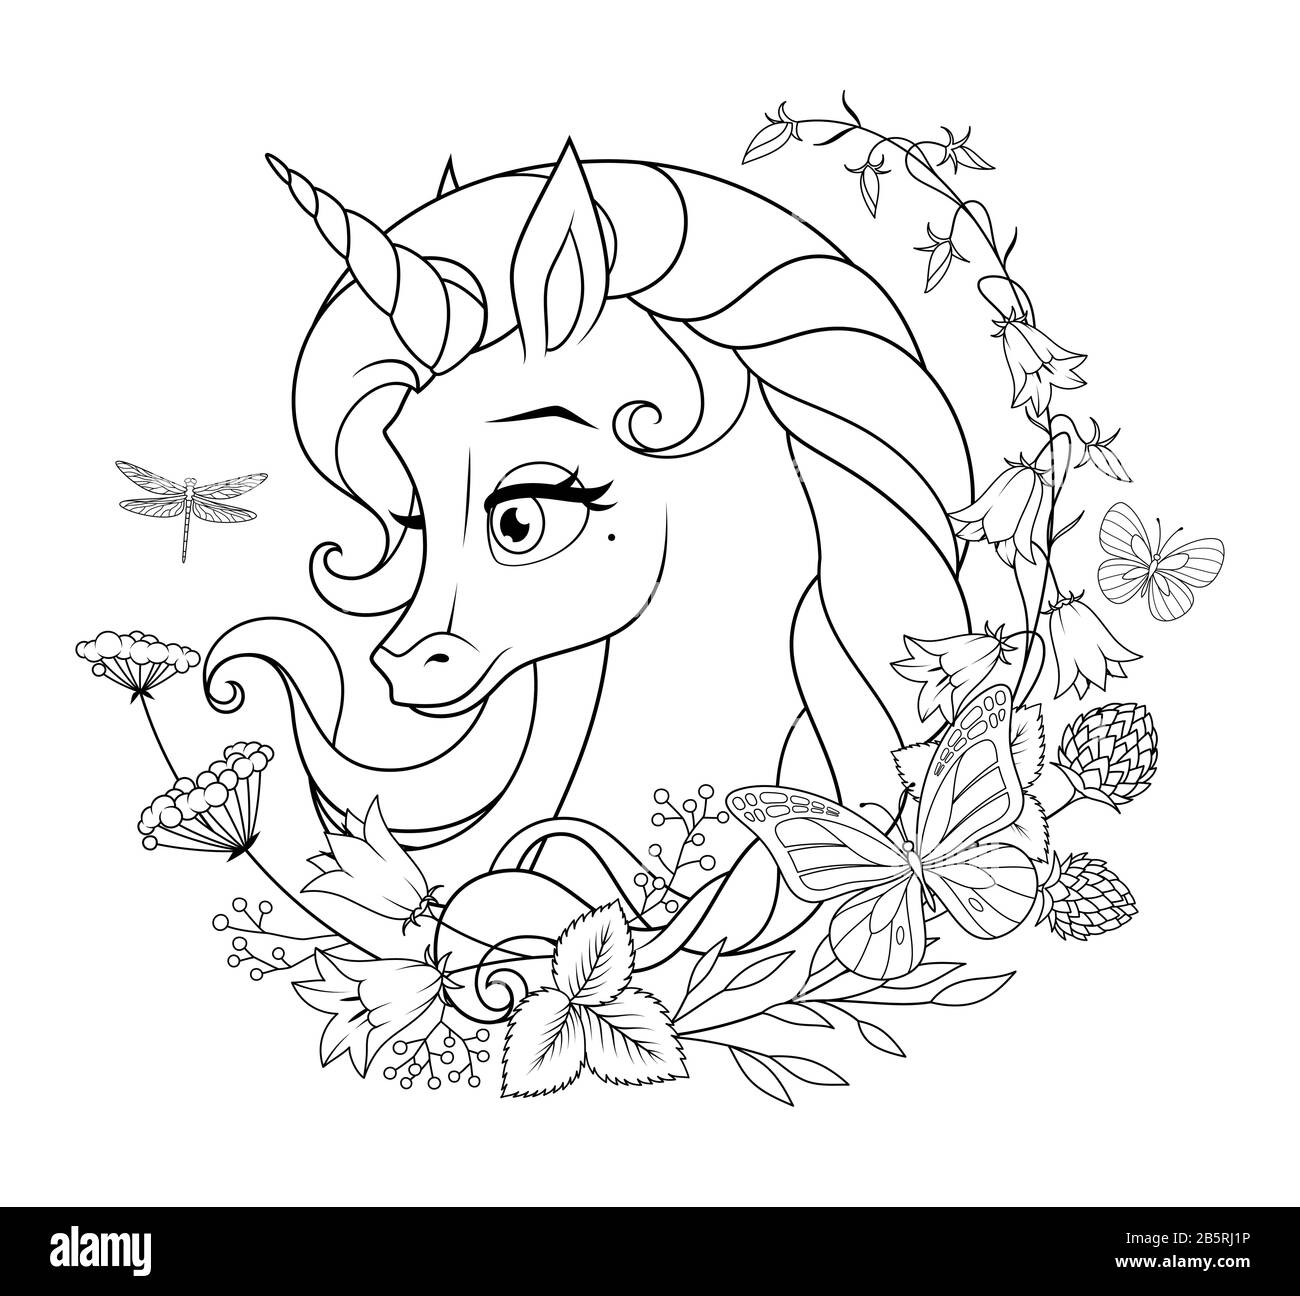 Cute Magic Unicorn Surrounded With Flowers And Butterflies Coloring Page Vector Illustration Stock Vector Image Art Alamy